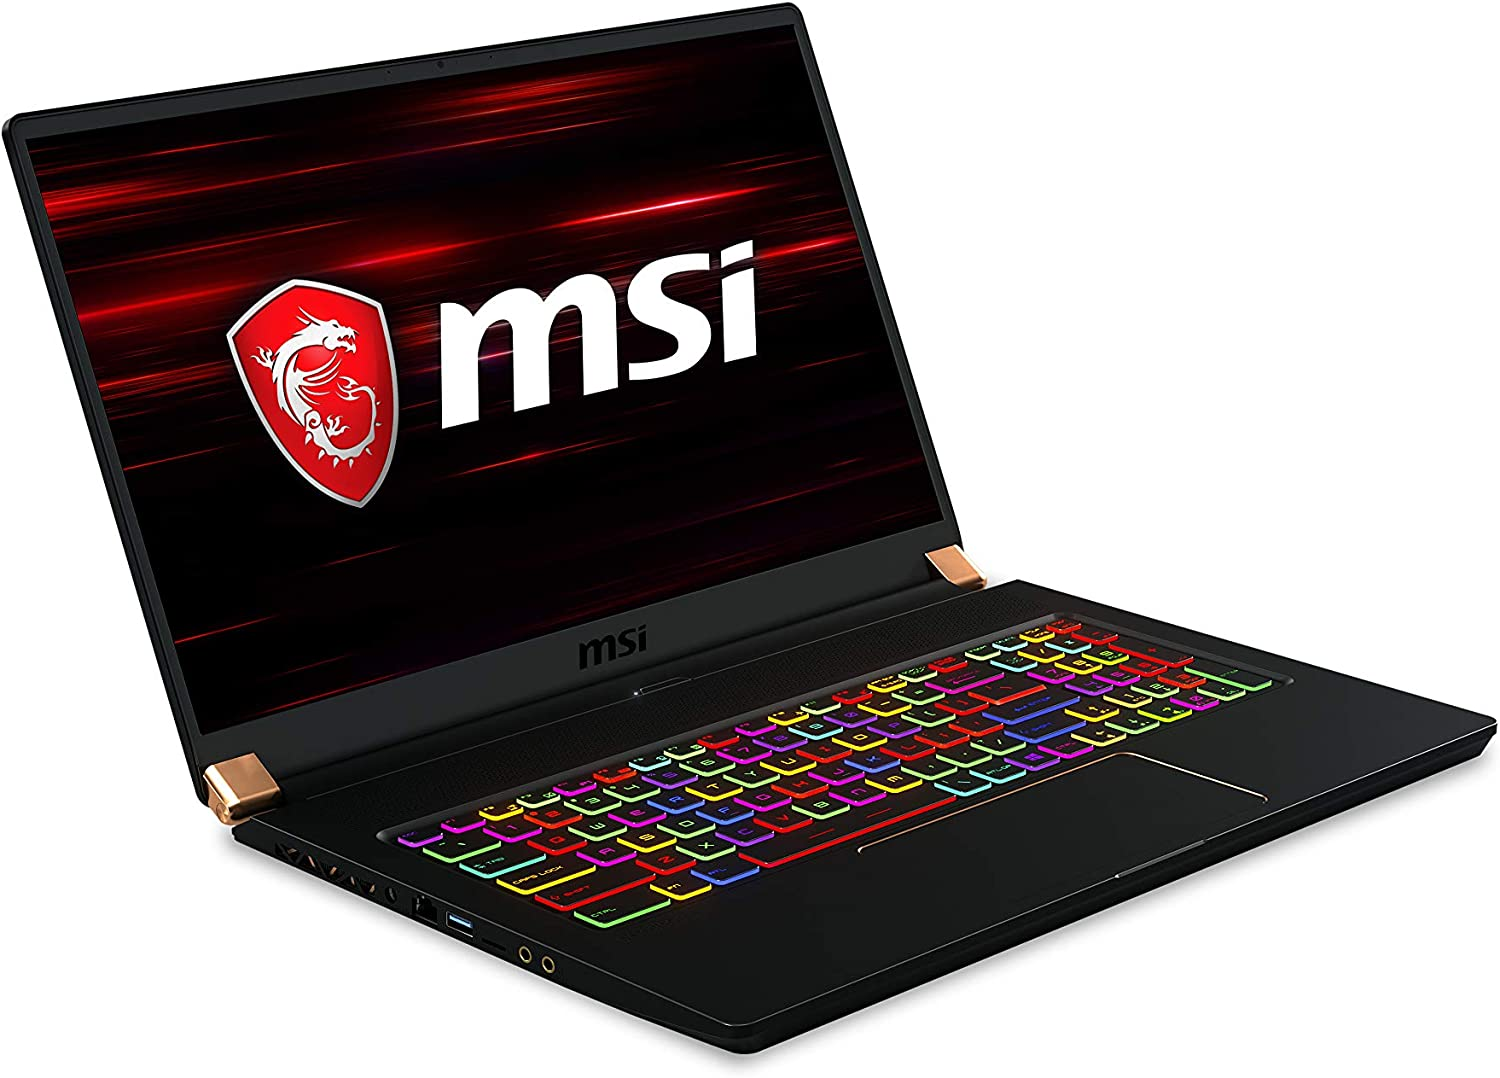 "MSI GS75 Stealth 10SFS-028 17.3"" 300Hz 3ms Ultra Thin and Light Gaming Laptop Intel Core i9-10980HK RTX 2070 Super 32GB 1TB NVMe SSD Win10PRO VR Ready"